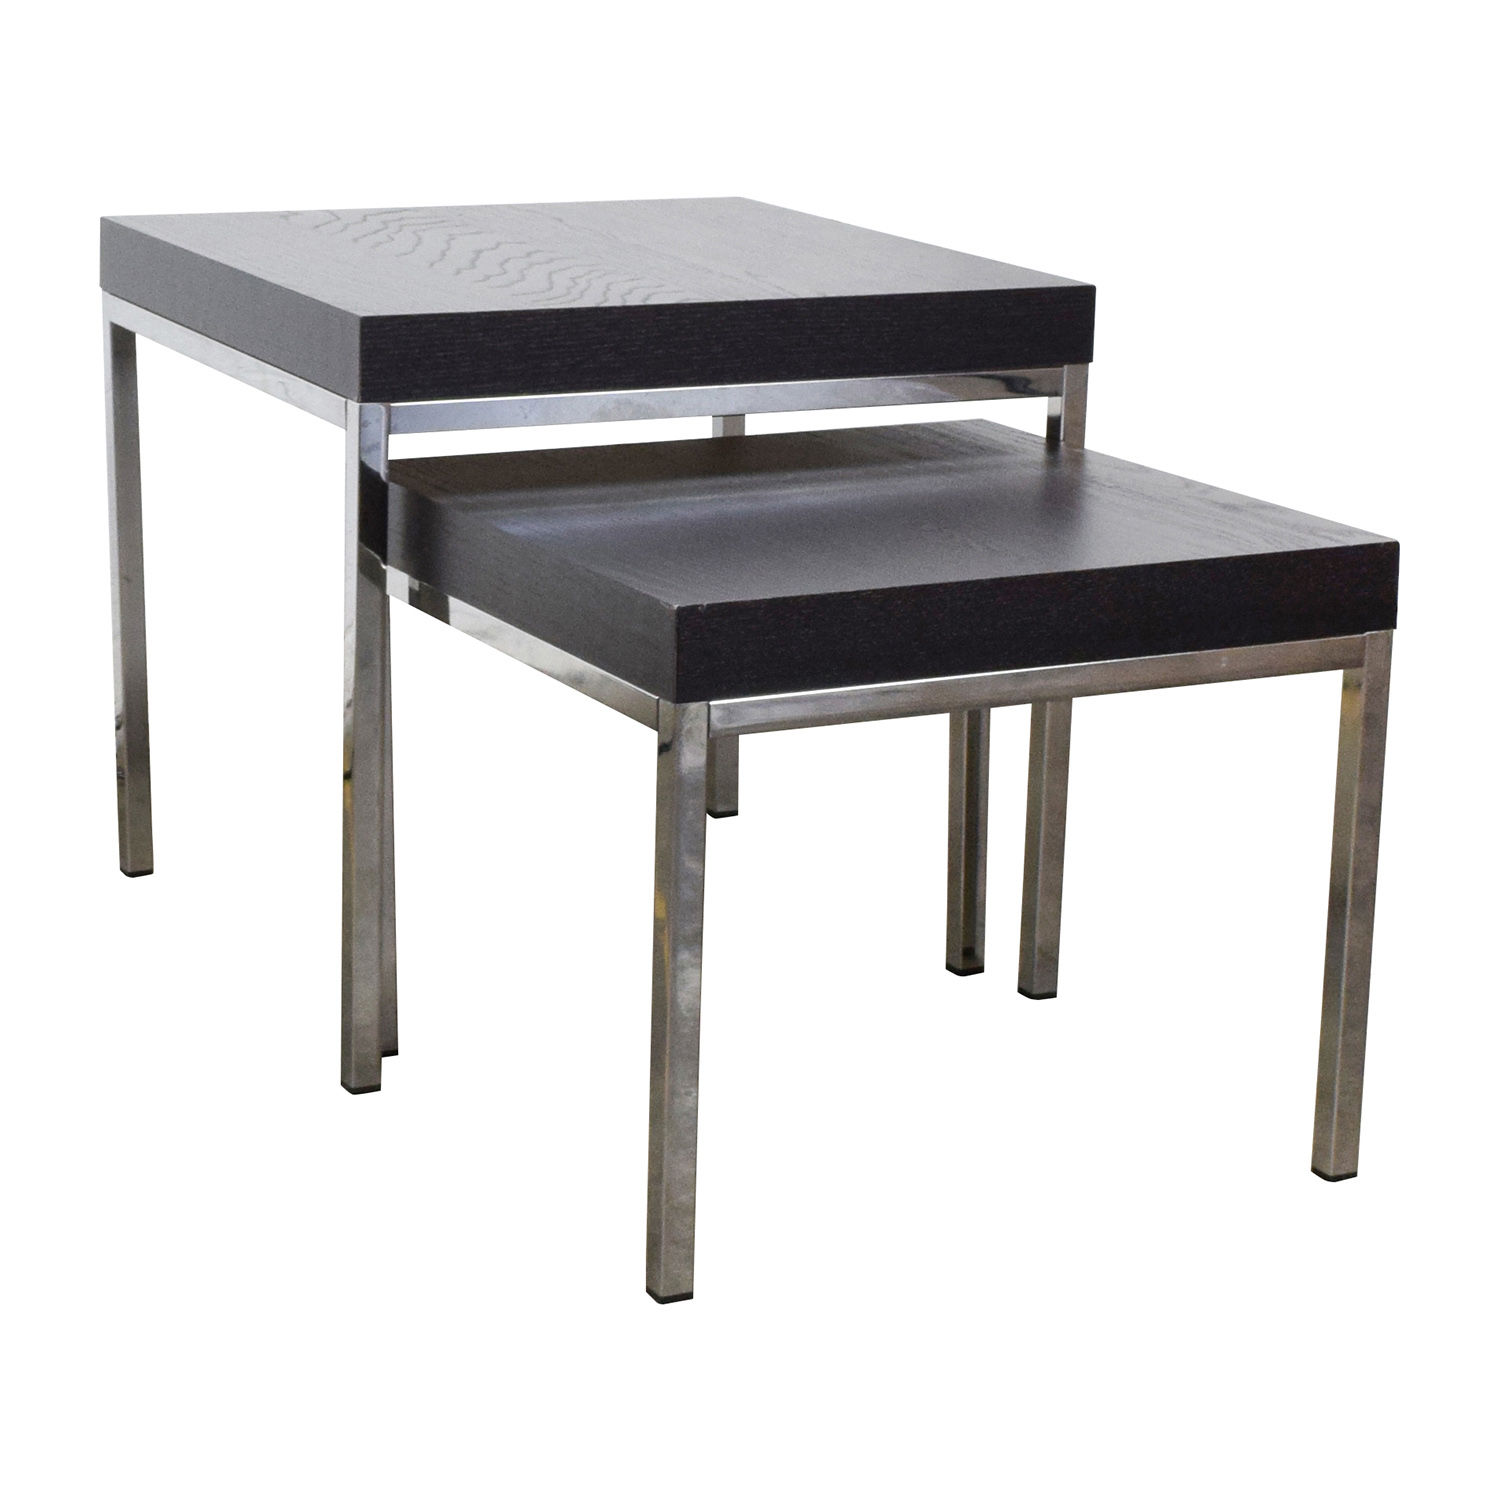 Ikea Klubbo Black And Chrome Nesting Tables End